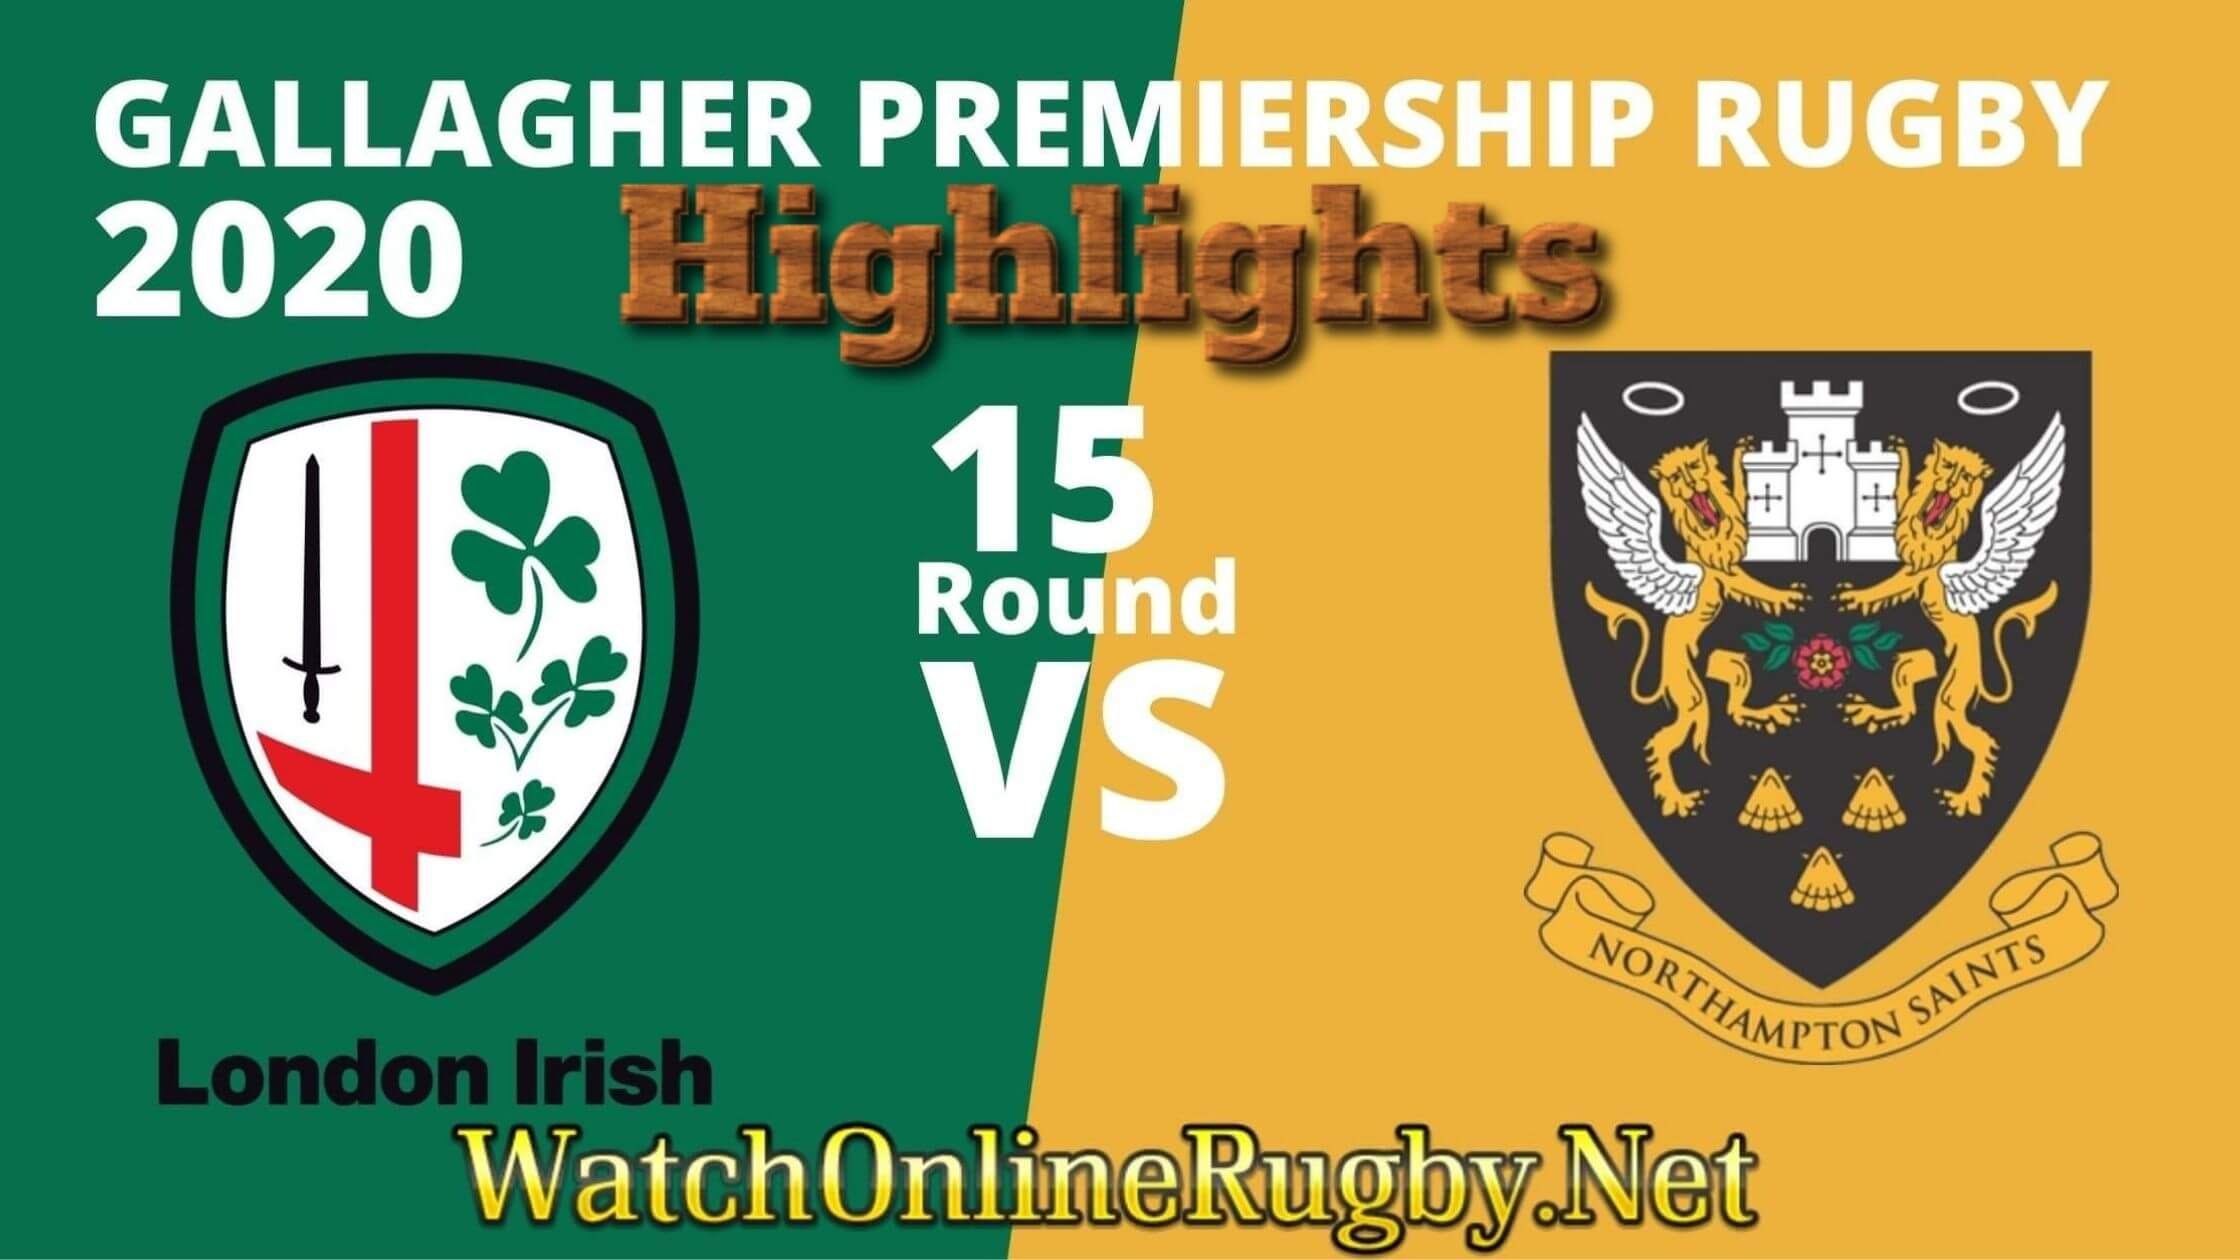 London Irish Vs Saints Highlights 2020 Rd 15